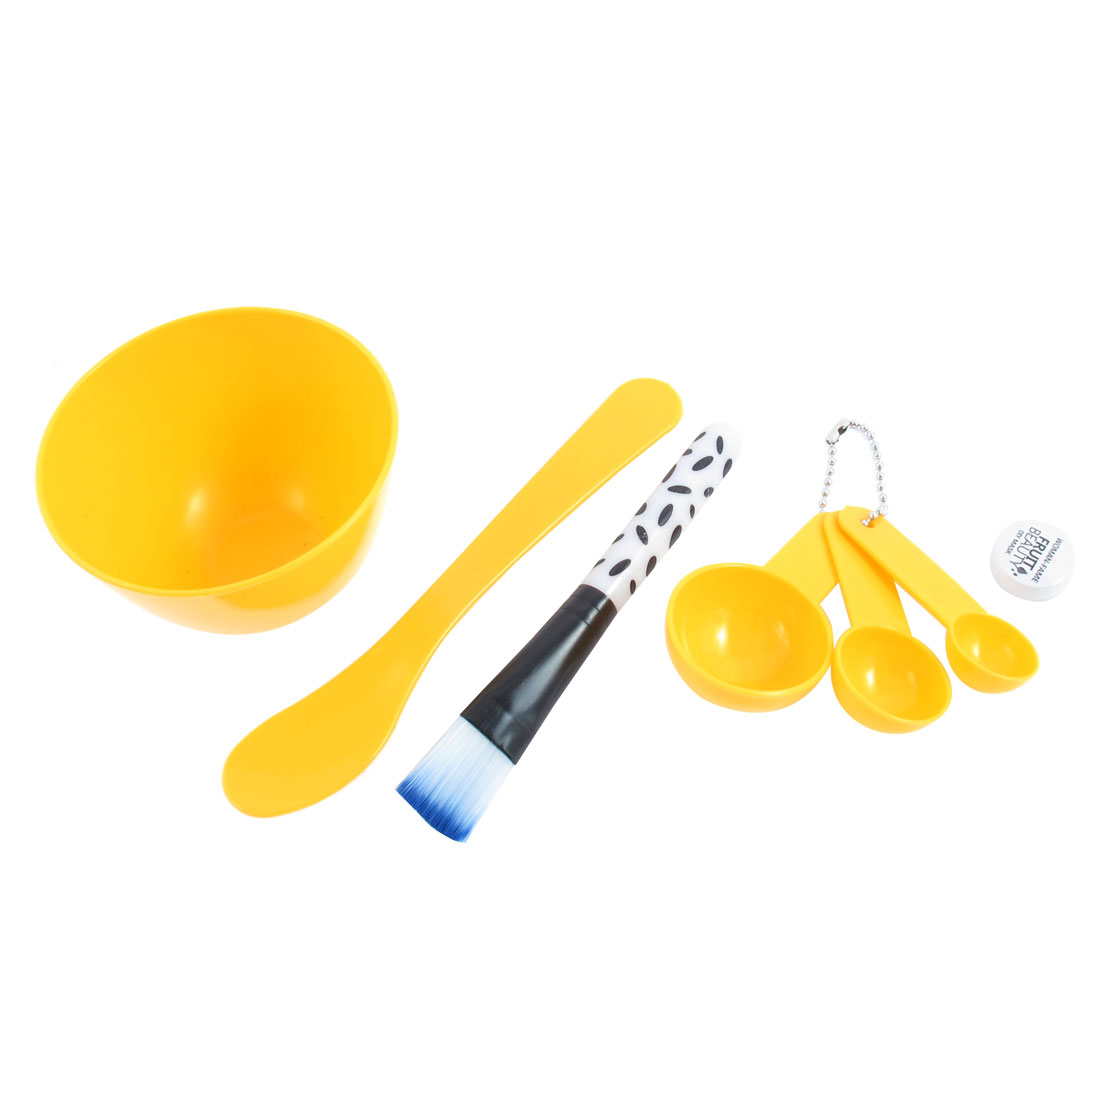 Beauty DIY Facial Mask Bowl Brush Spoon Stick Cosmetic Tool 6 in1 Set Yellow